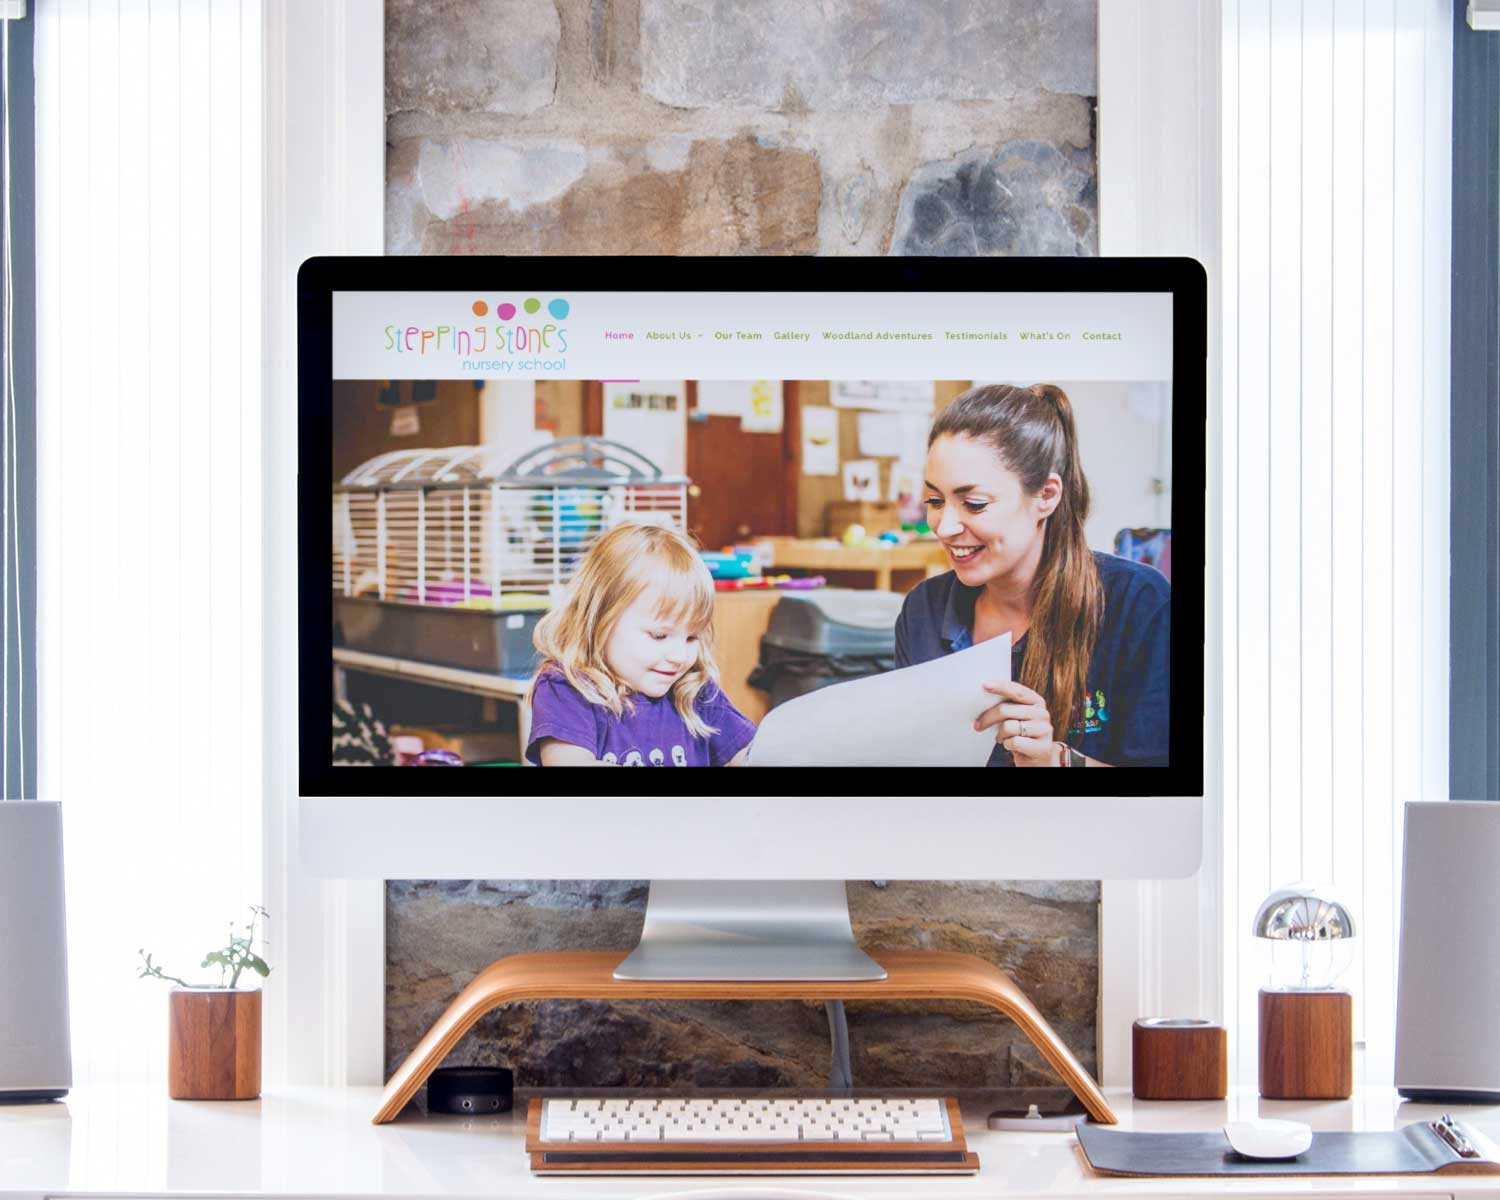 Nursery-School-Web-Design-for-Stepping-Stones-Nursery-by-Three-Girls-Media_Imac